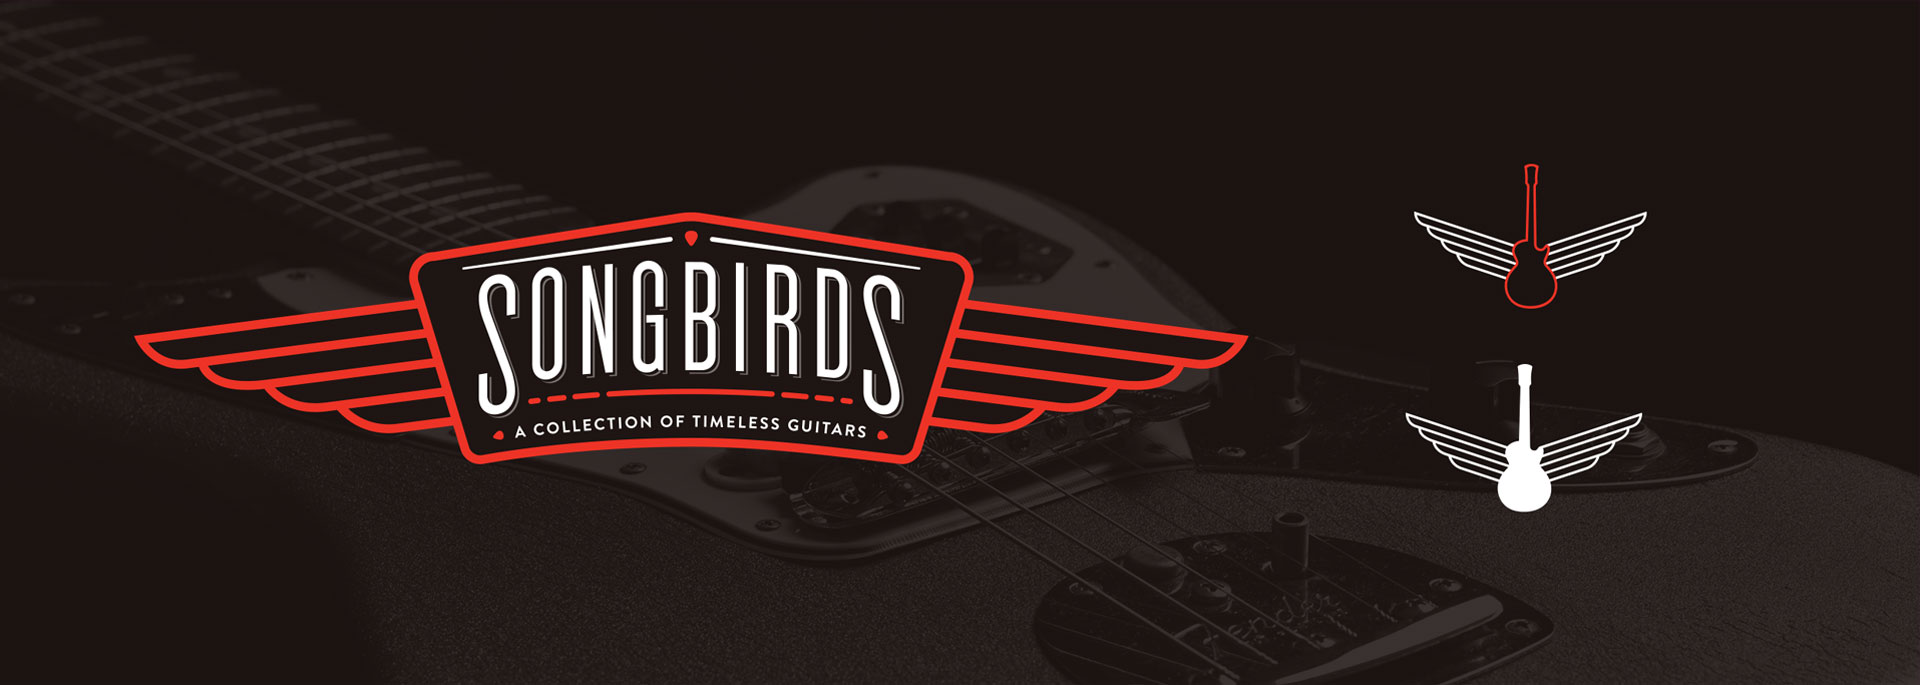 Songbirds Guitars - Branding, Identity, Logos, Social Media Icons